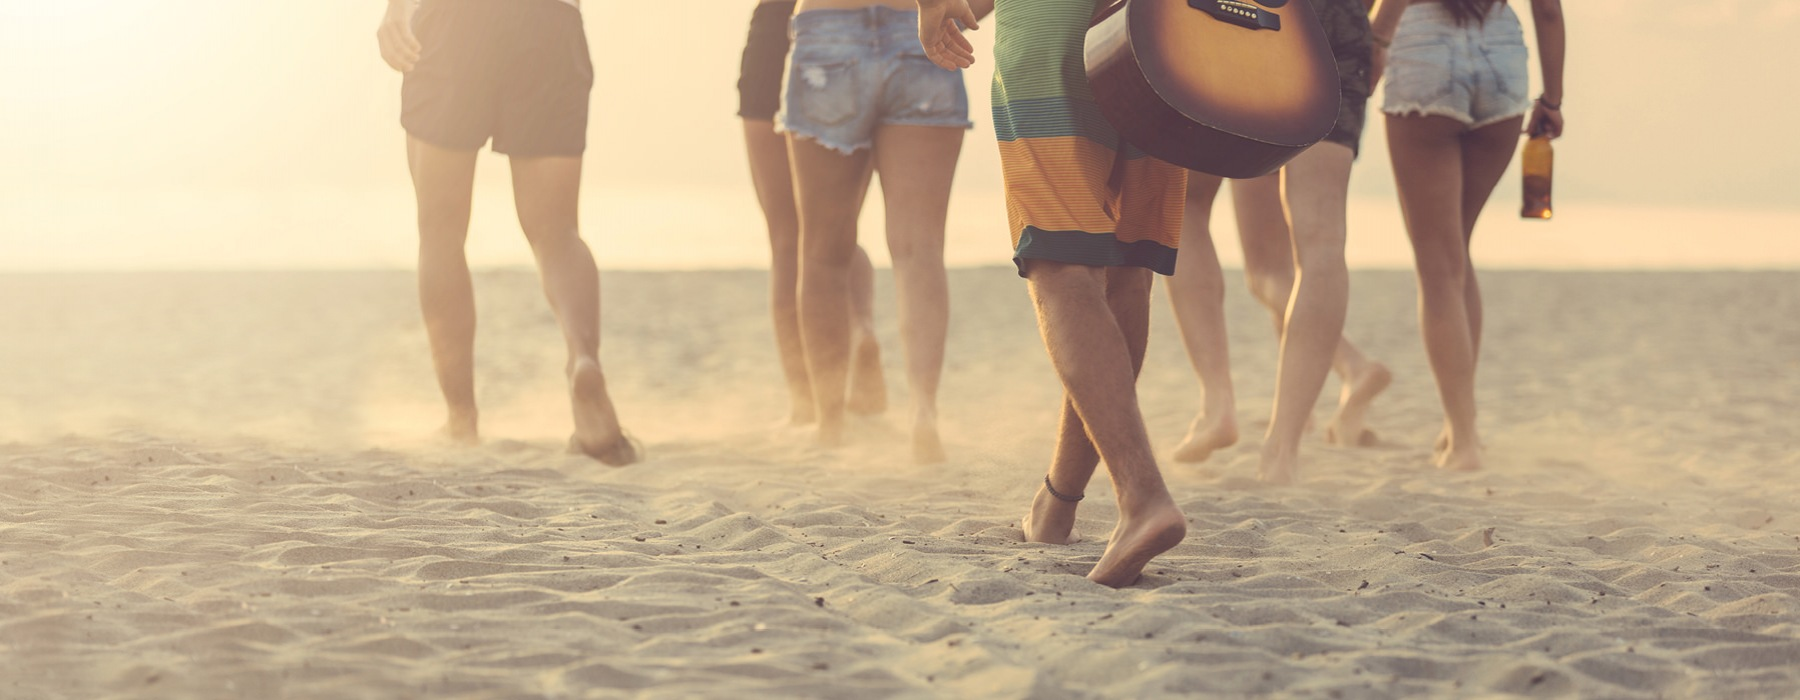 group of friends walking on the beach toward the ocean with beer and a guitar